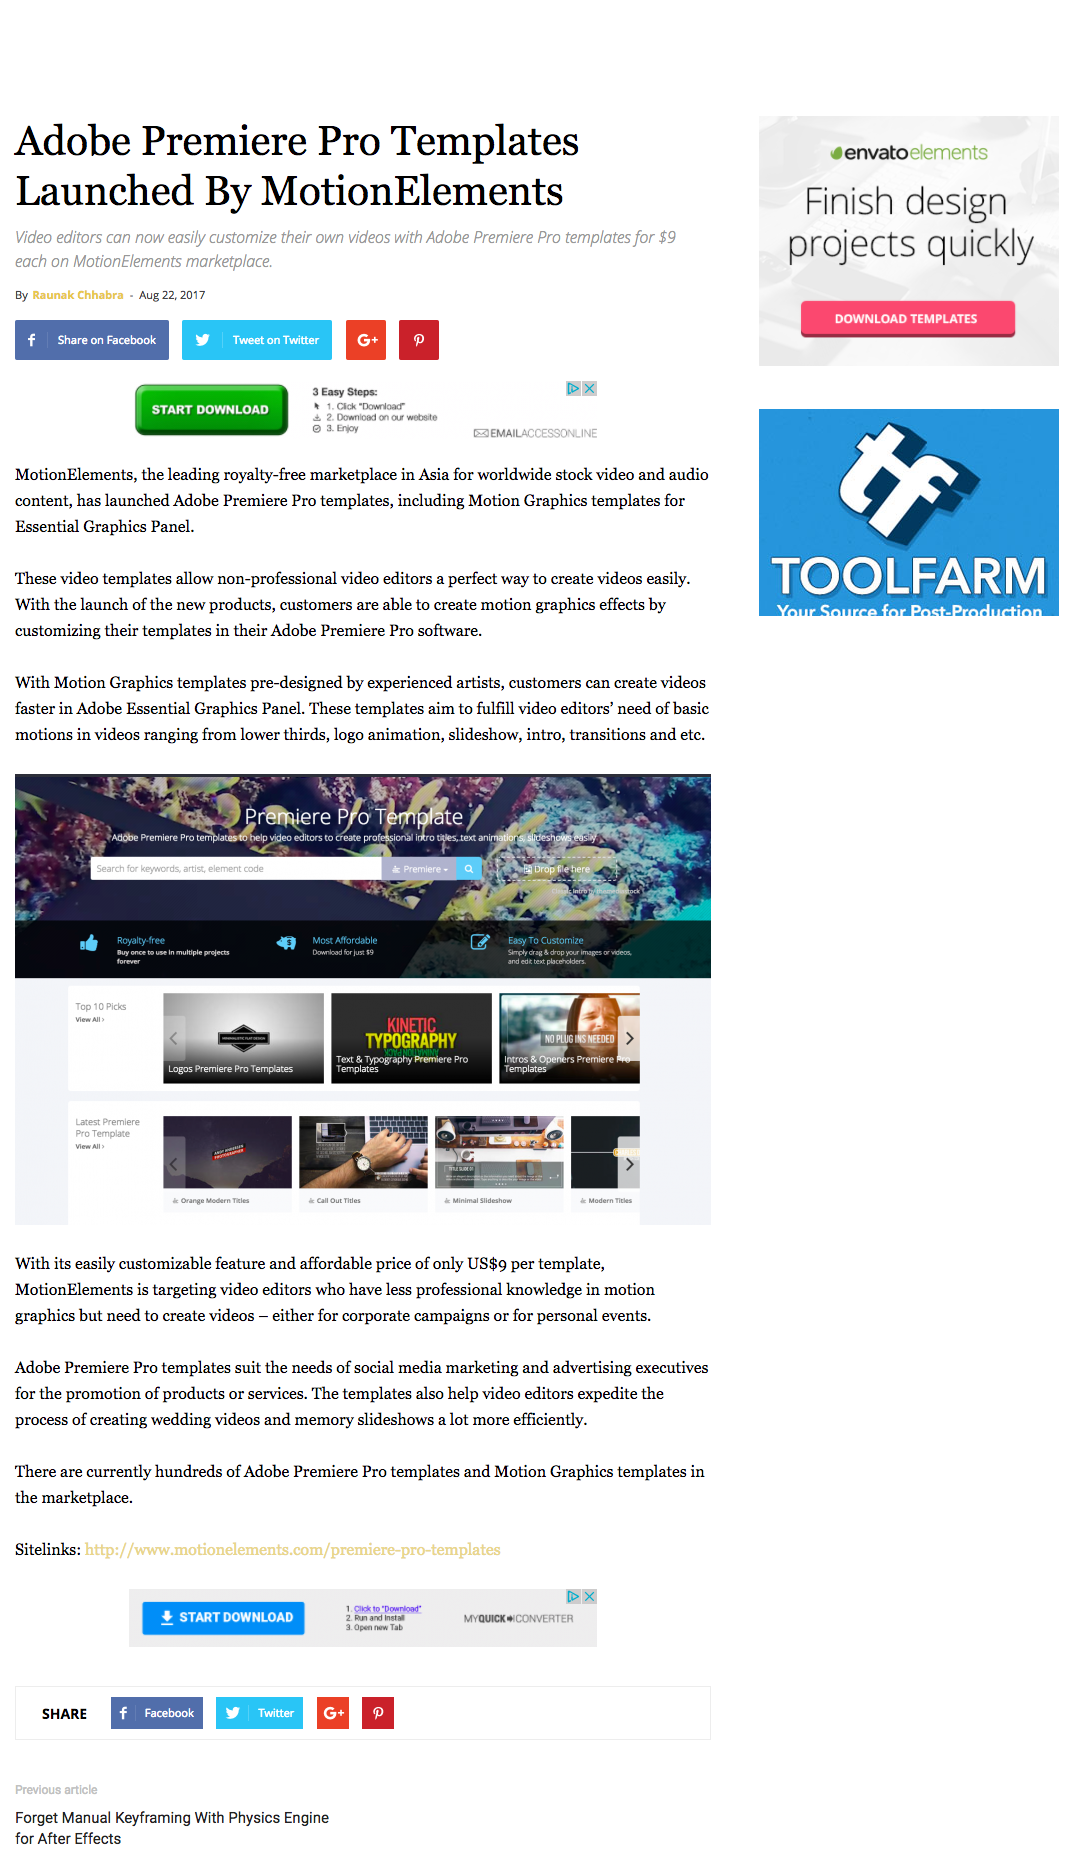 (English) Editing Corporation: Adobe Premiere Pro Templates Launched By MotionElements